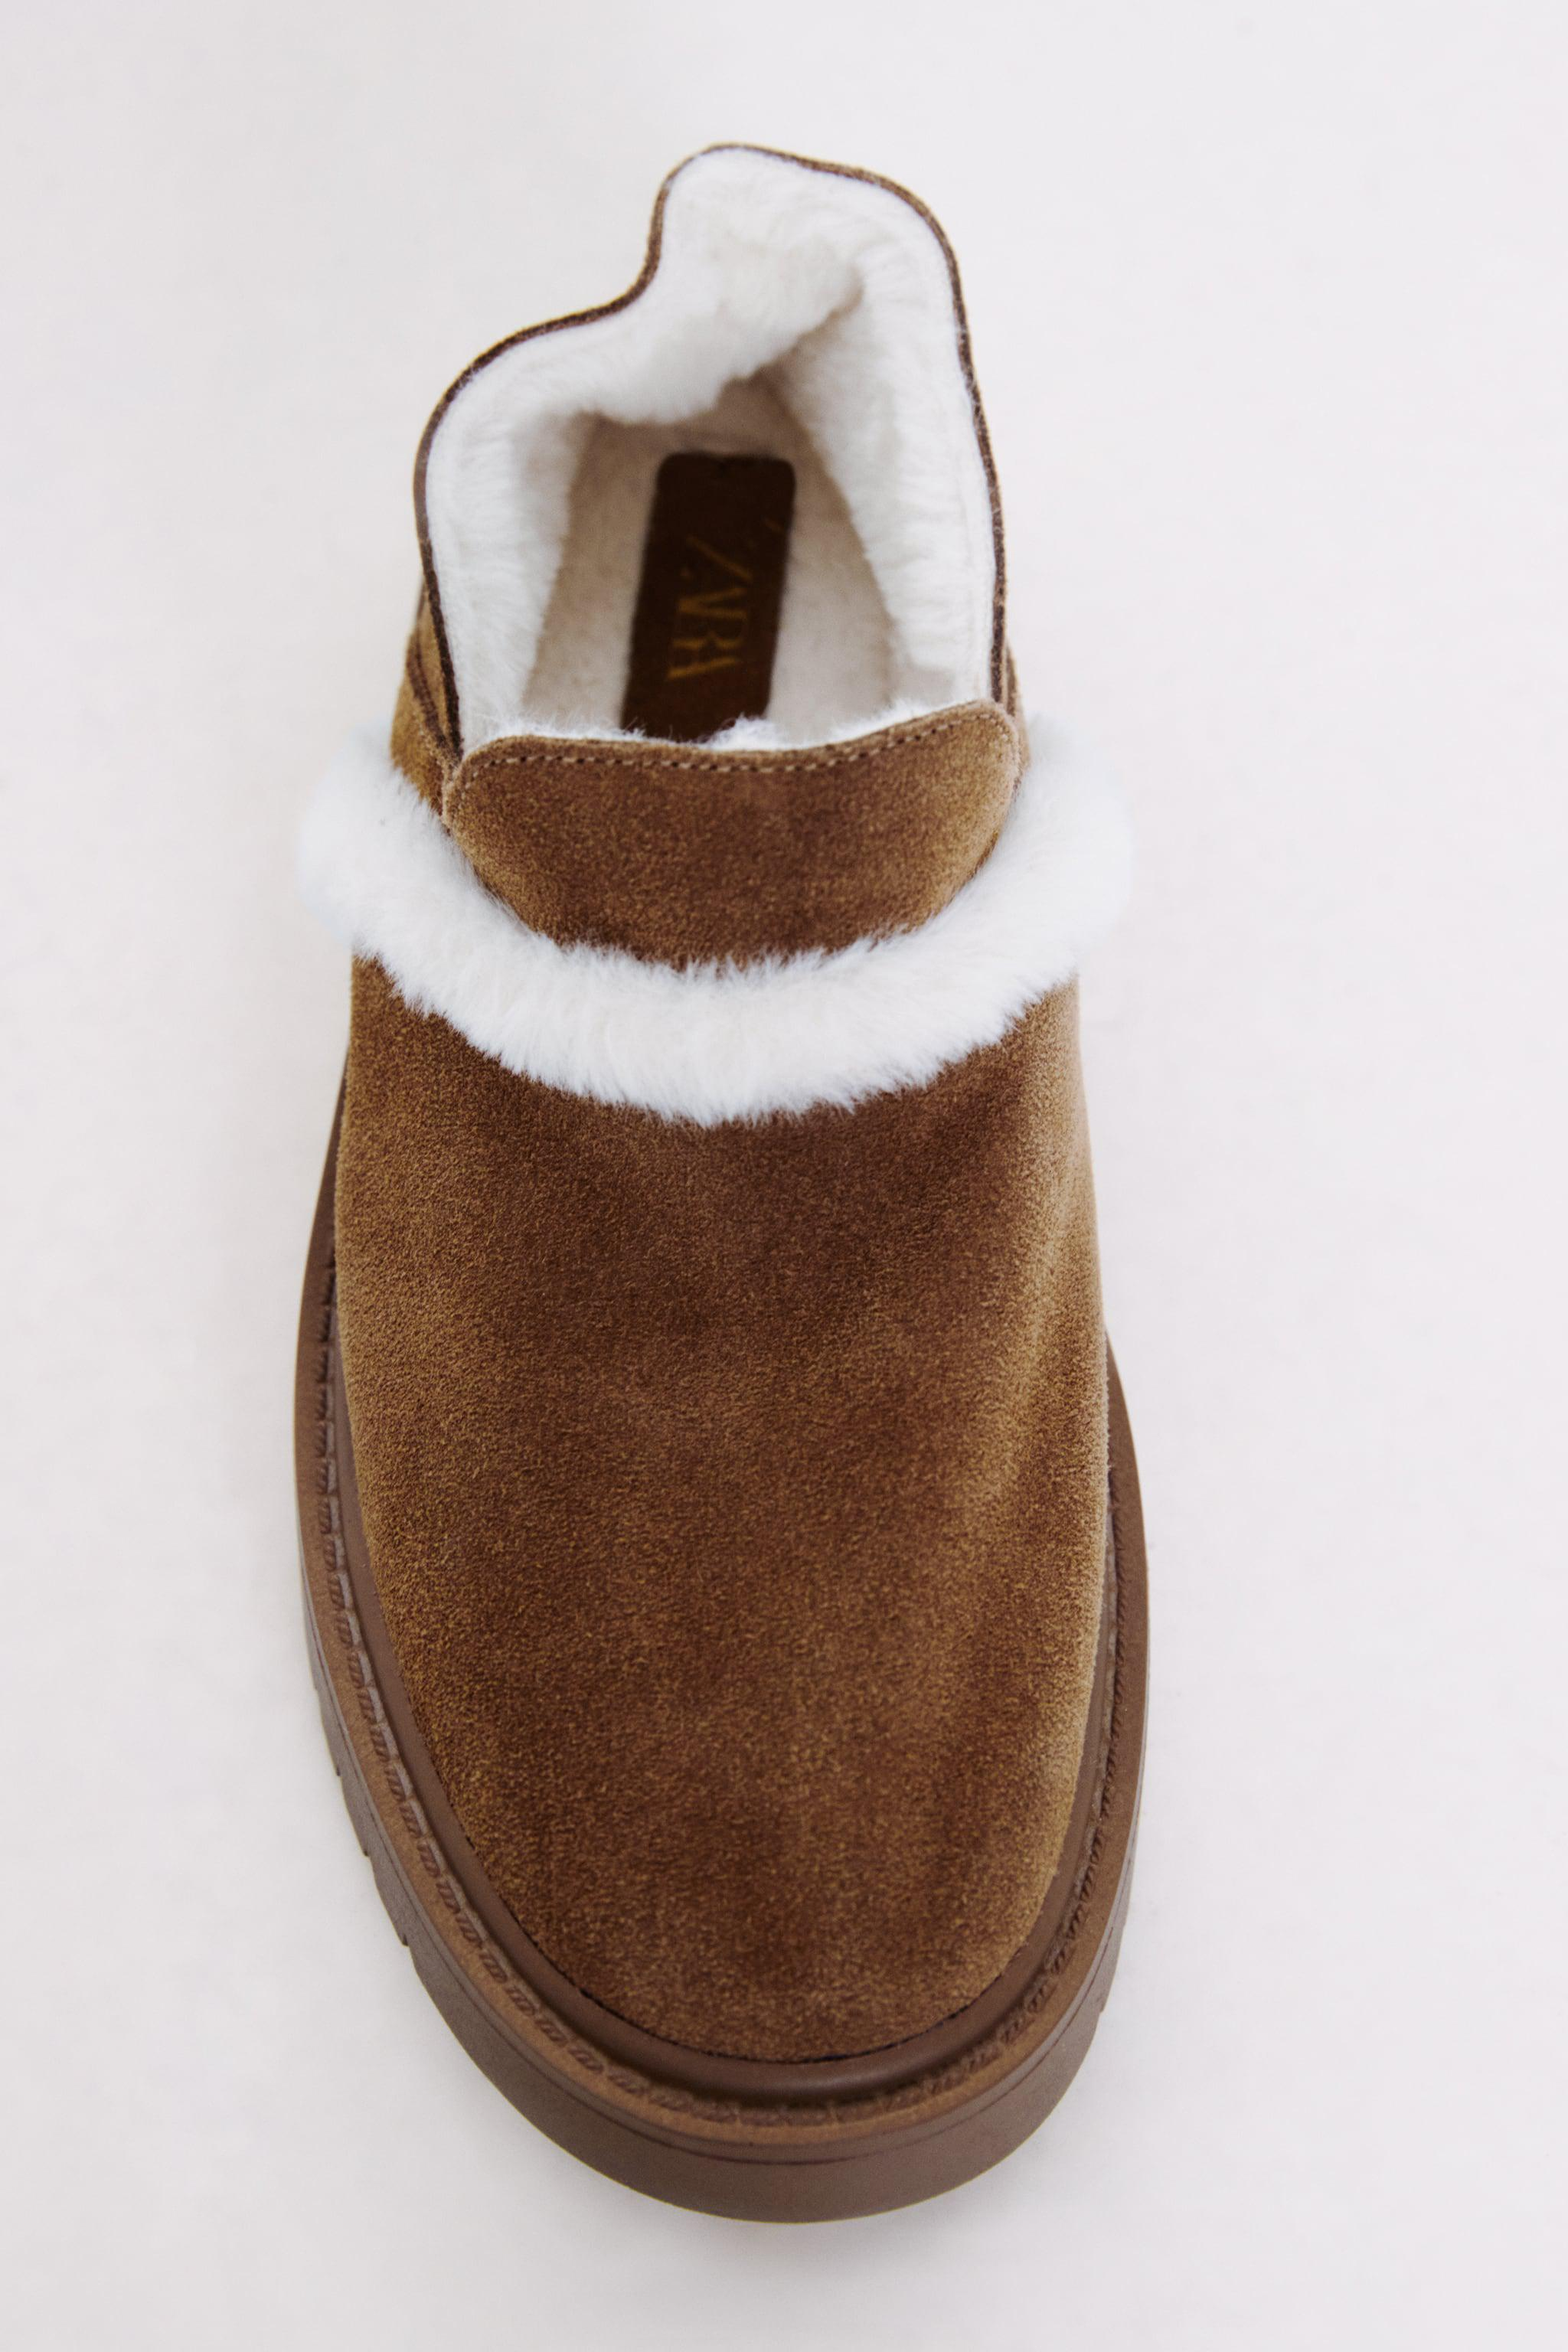 FAUX FUR LINED LOW HEELED LEATHER SHOES 8